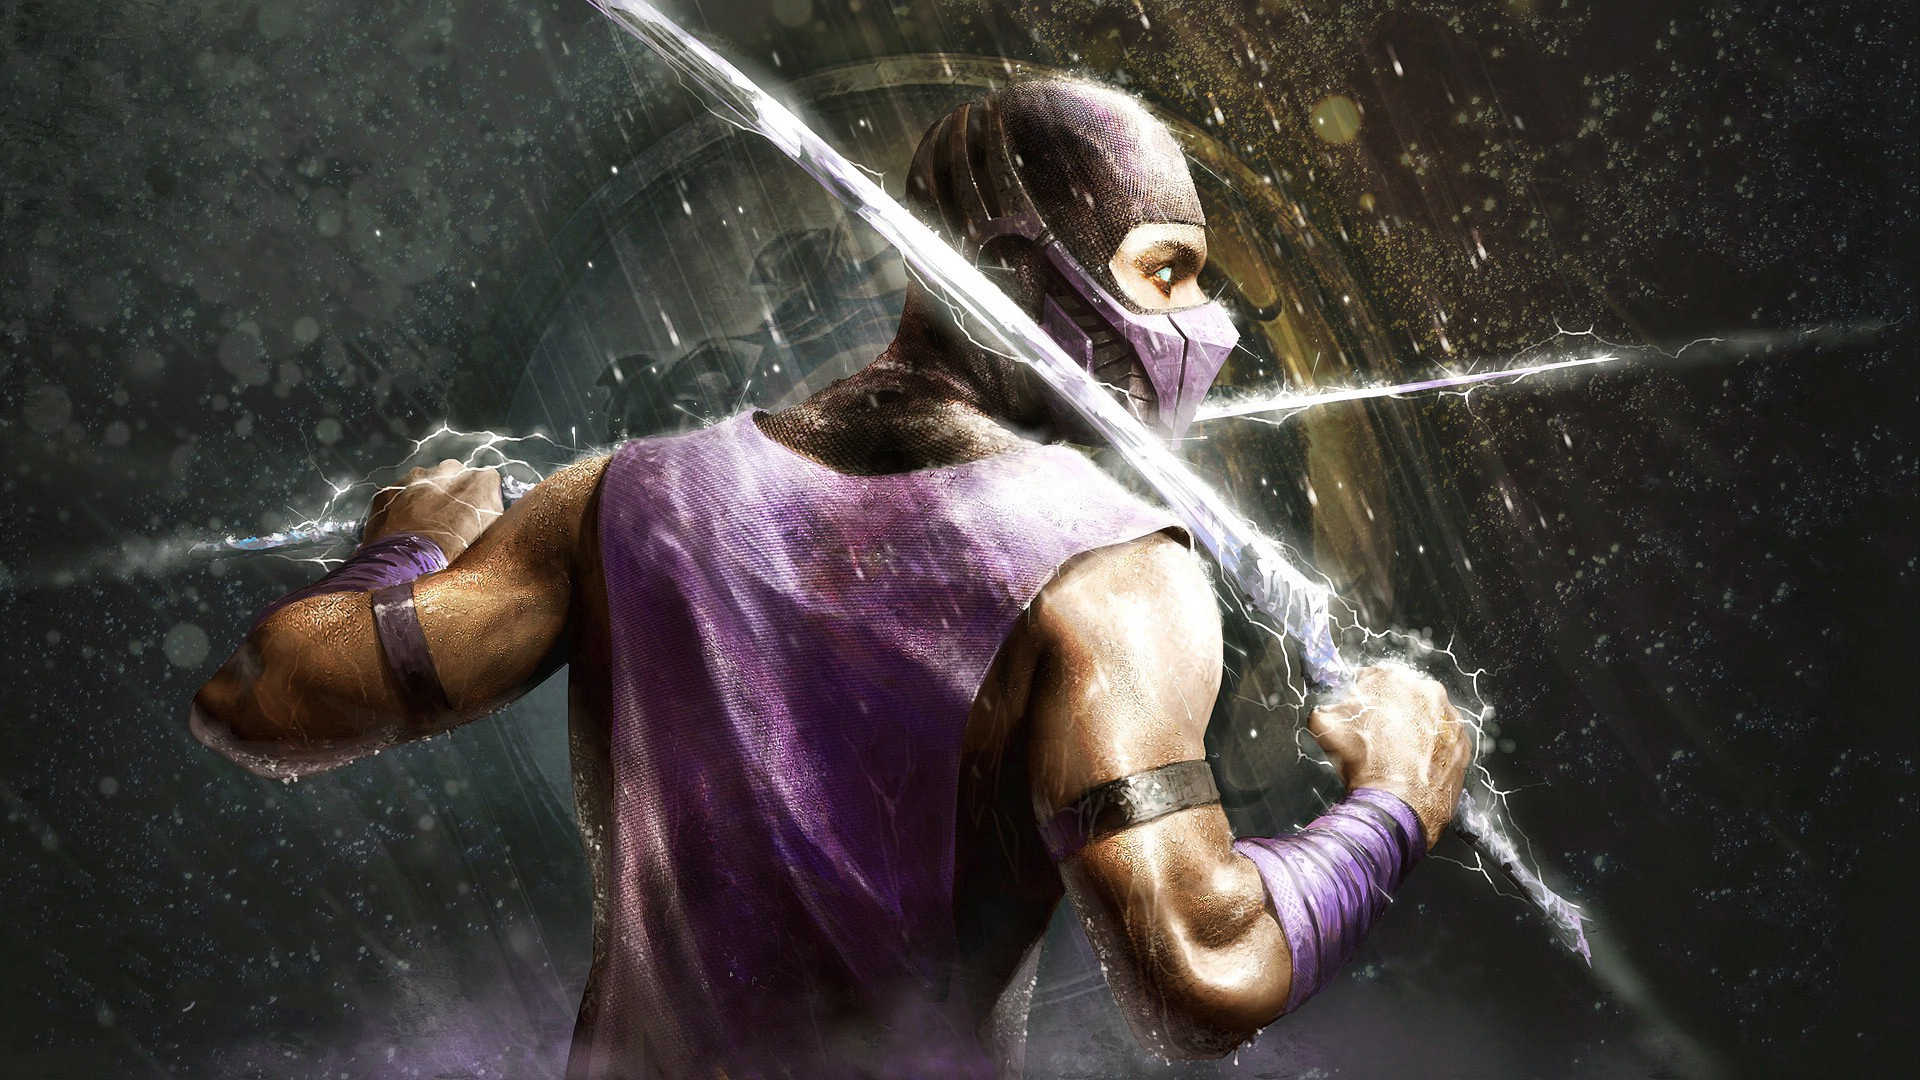 Rain in Mortal Kombat HD Wallpapersjpg 1920x1080